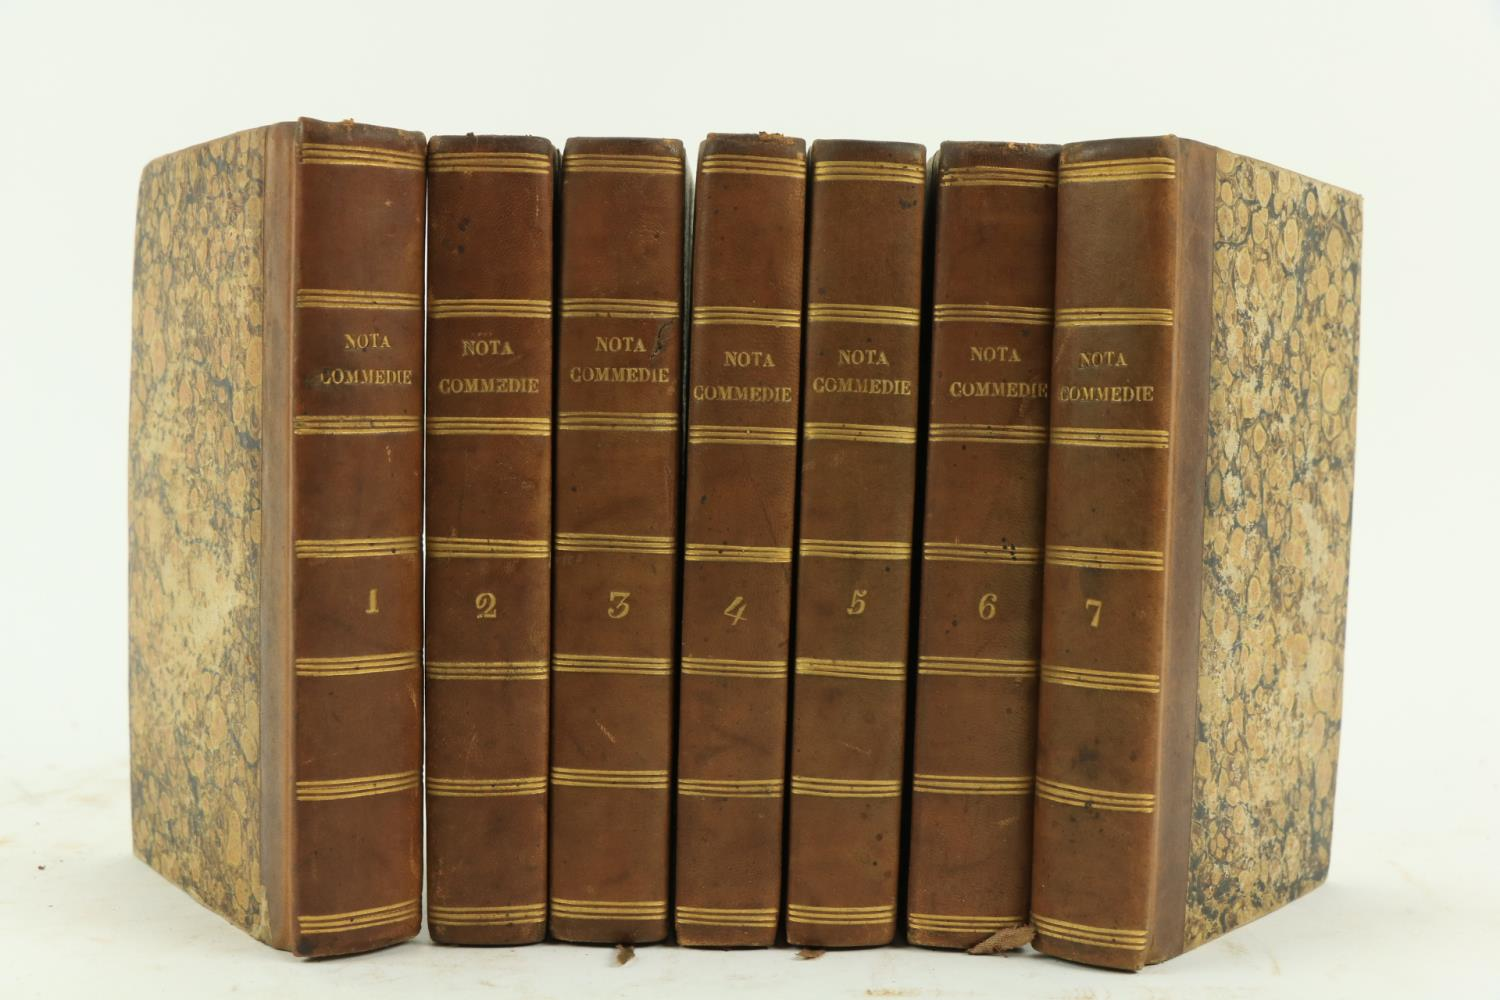 Nota (A.)ÿCommedie di Alberto Nota, 7 vols. 12mo Florence 1827. Port. frontis, cont. calf backed